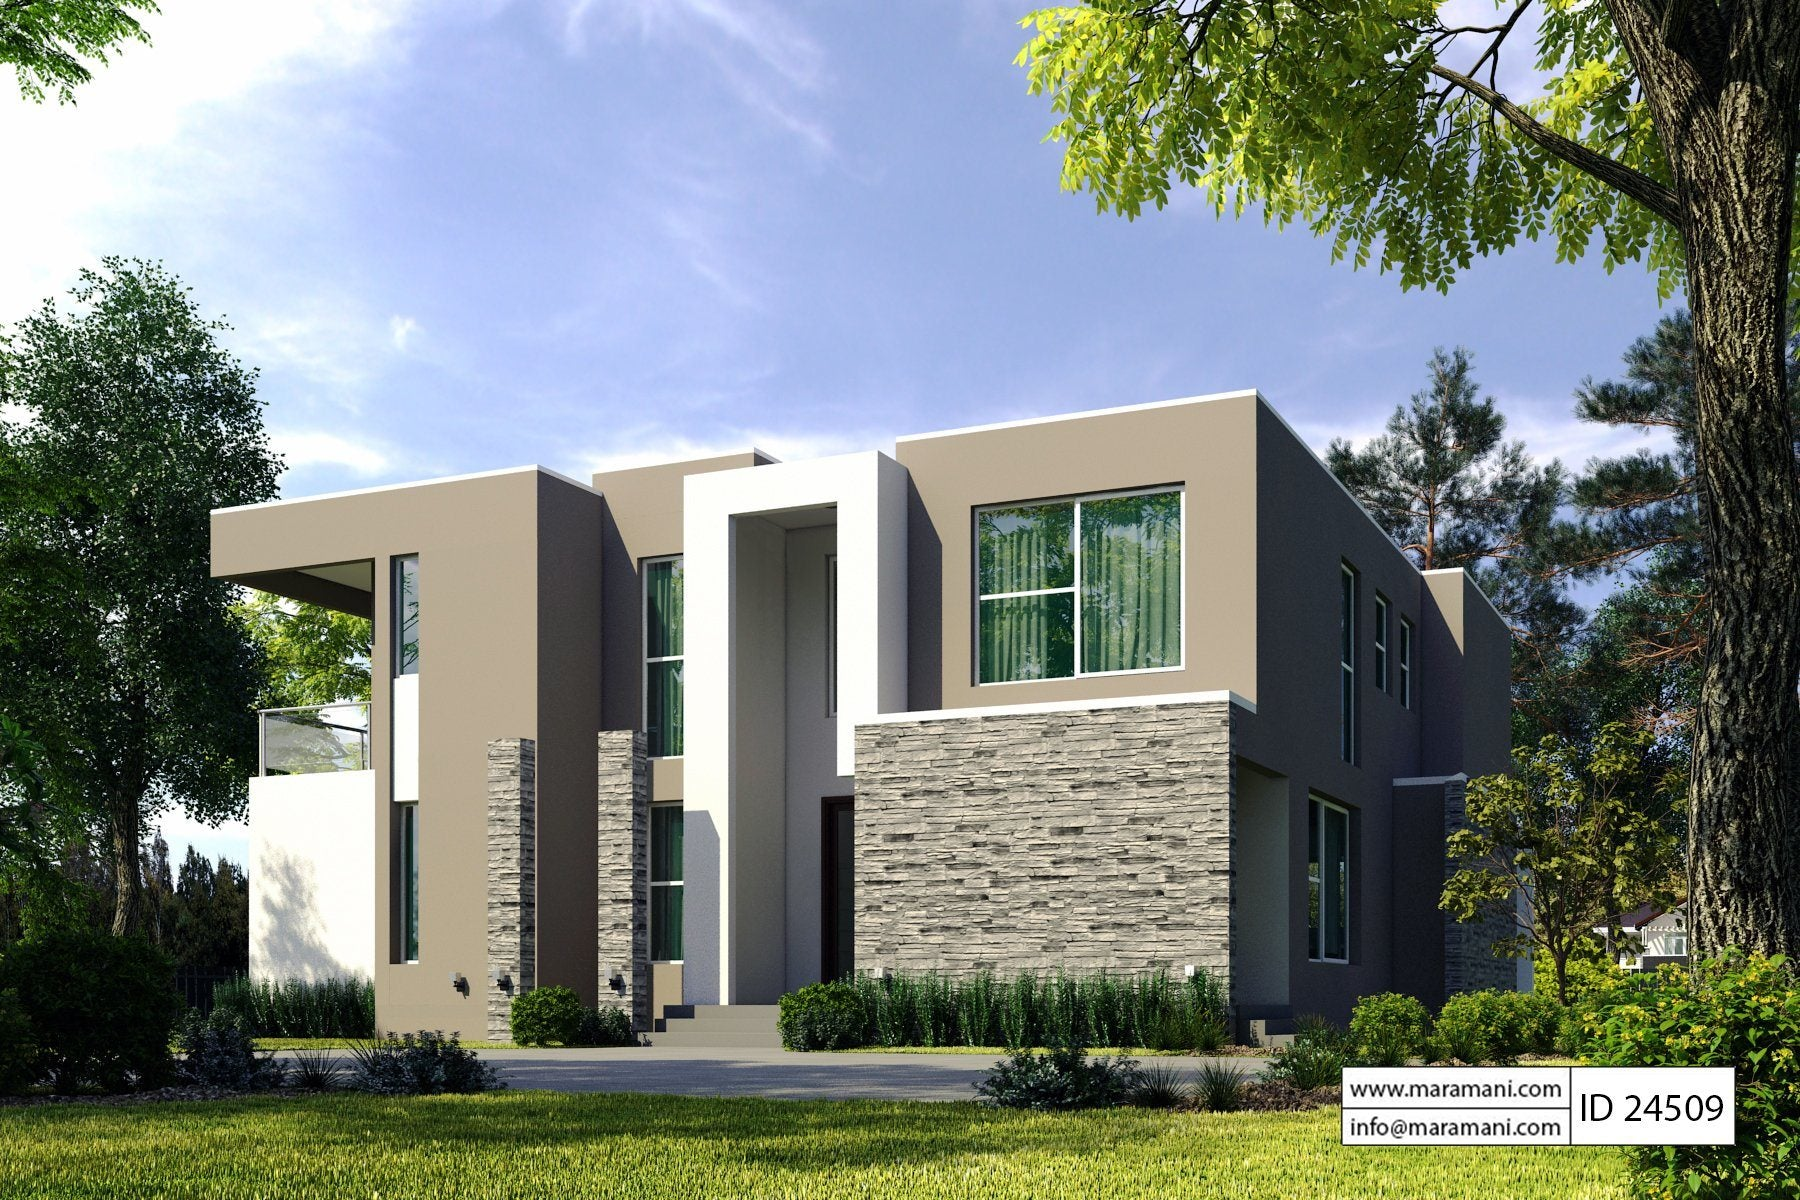 4 Bedroom Modern House Plan Id 24509 House Plans By